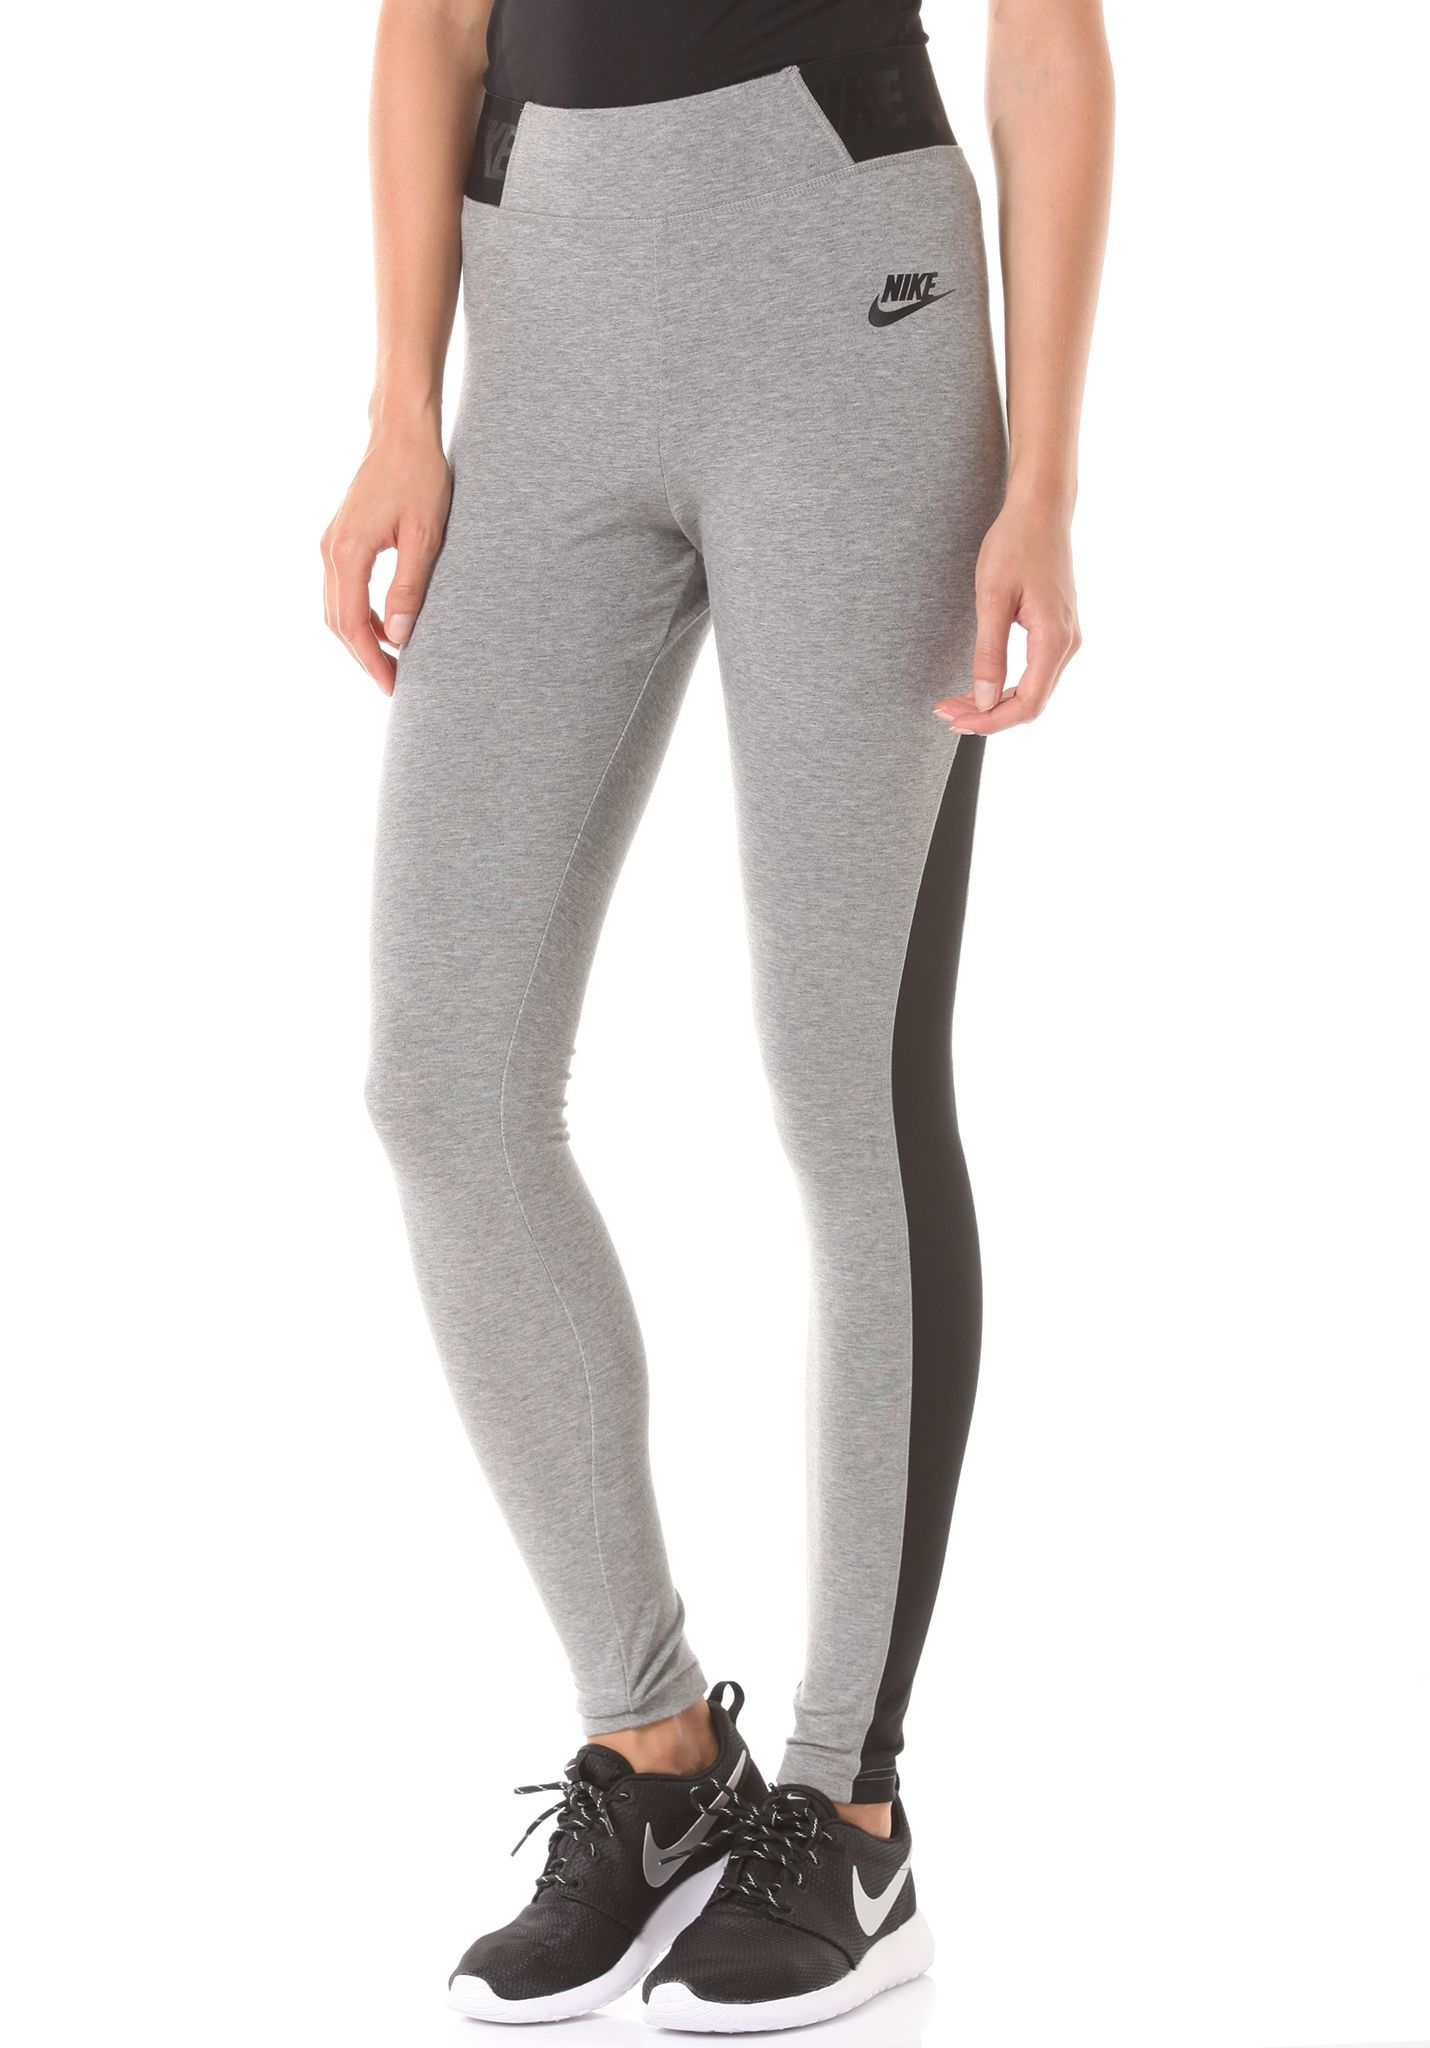 048a444b8cee3 NIKE SPORTSWEAR HTR T2 - Leggings for Women - Grey - Planet Sports